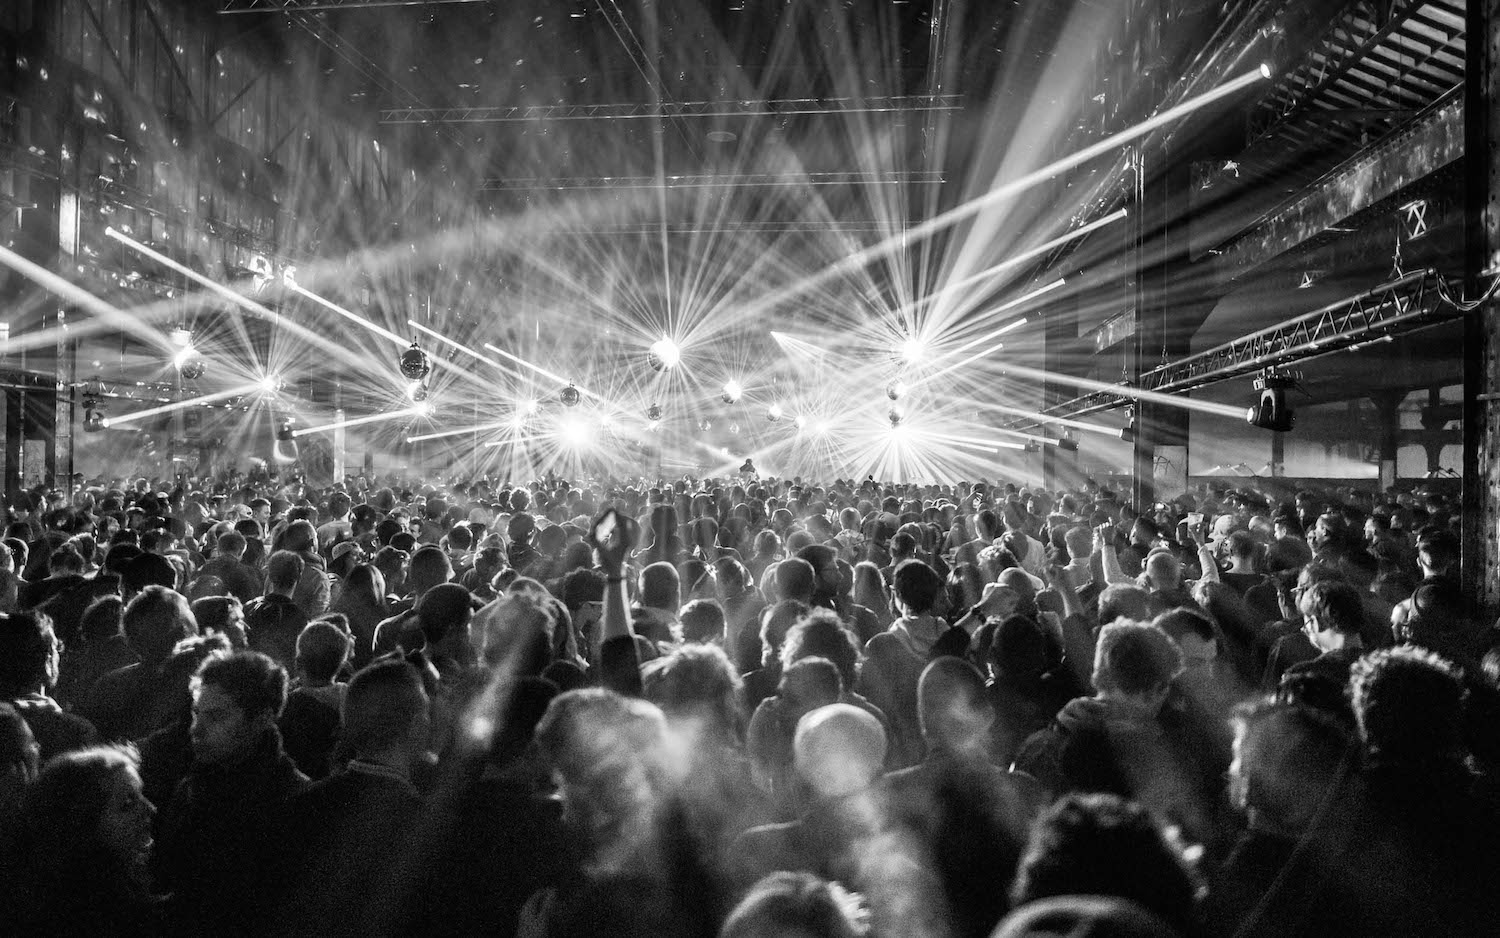 The crowd enjoyed the show at Red Bull Music Academy stage during Nuits sonores festival in Lyon, France on May 15th 2015